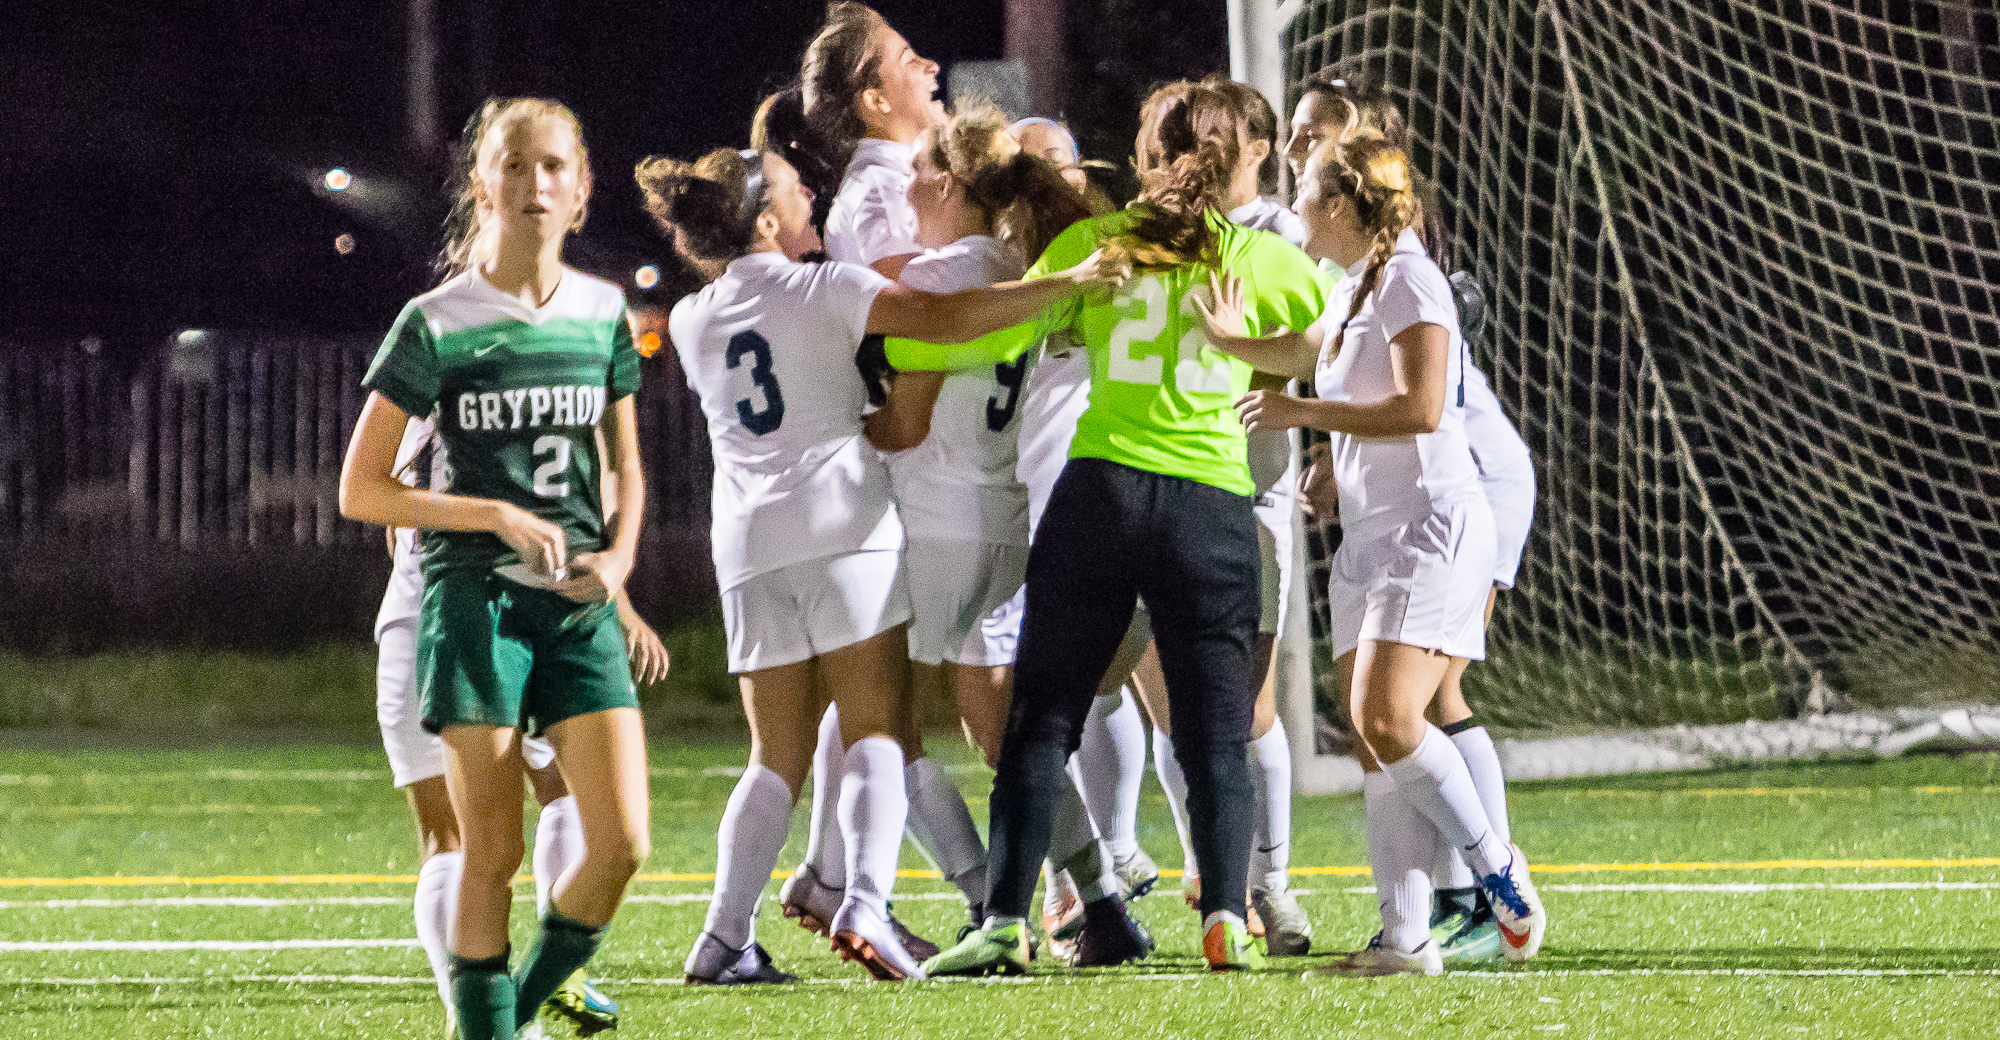 Sequeira Sends Women's Soccer Into First Skyline Postseason Over Sarah Lawrence